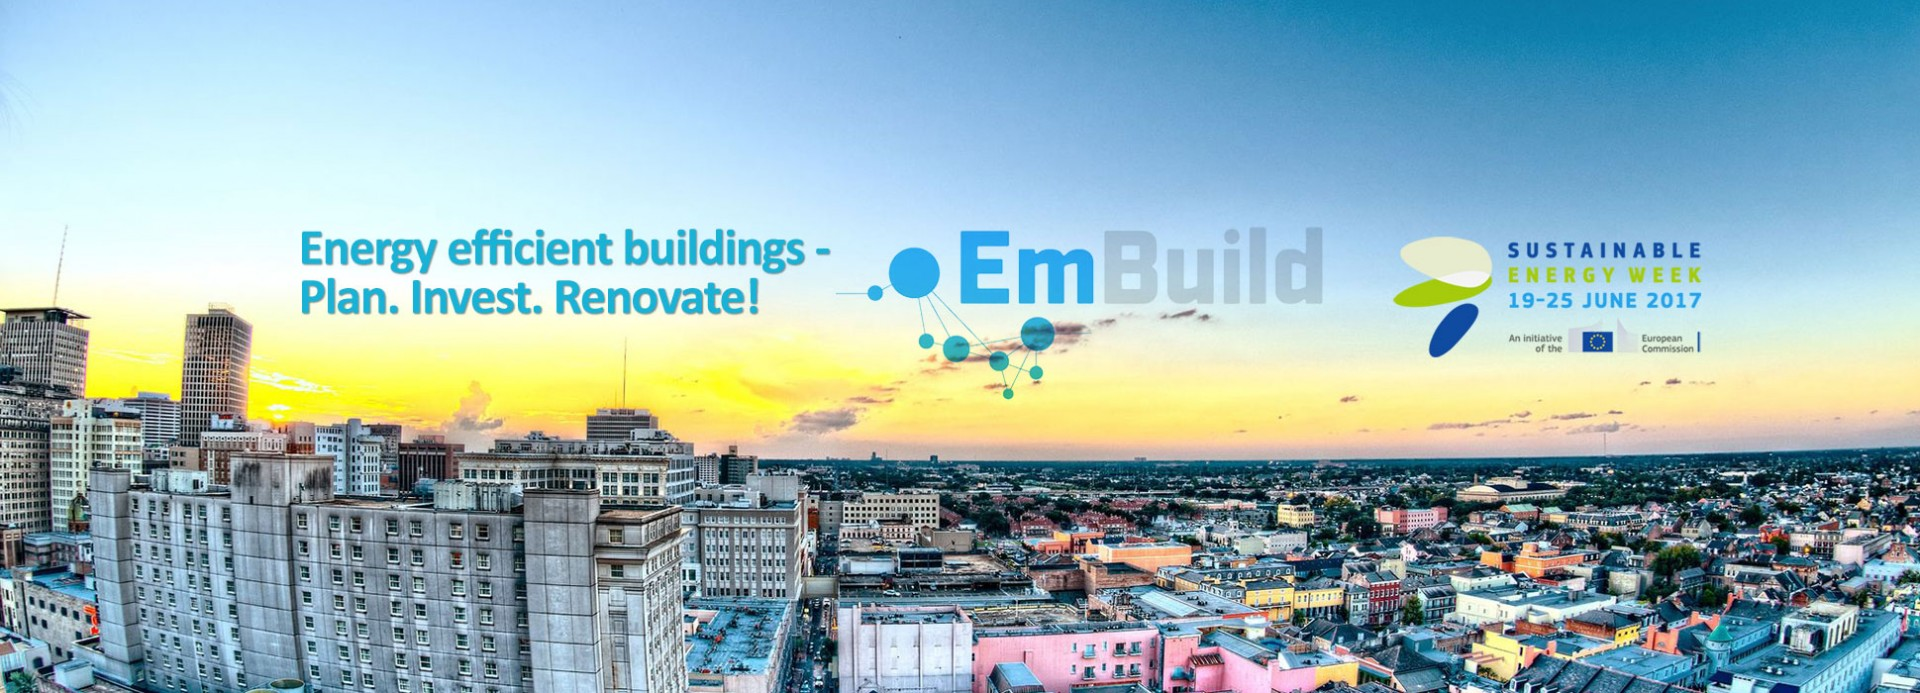 EmBuild Final Conference: Energy Efficient Buildings – Plan. Invest. Renovate!